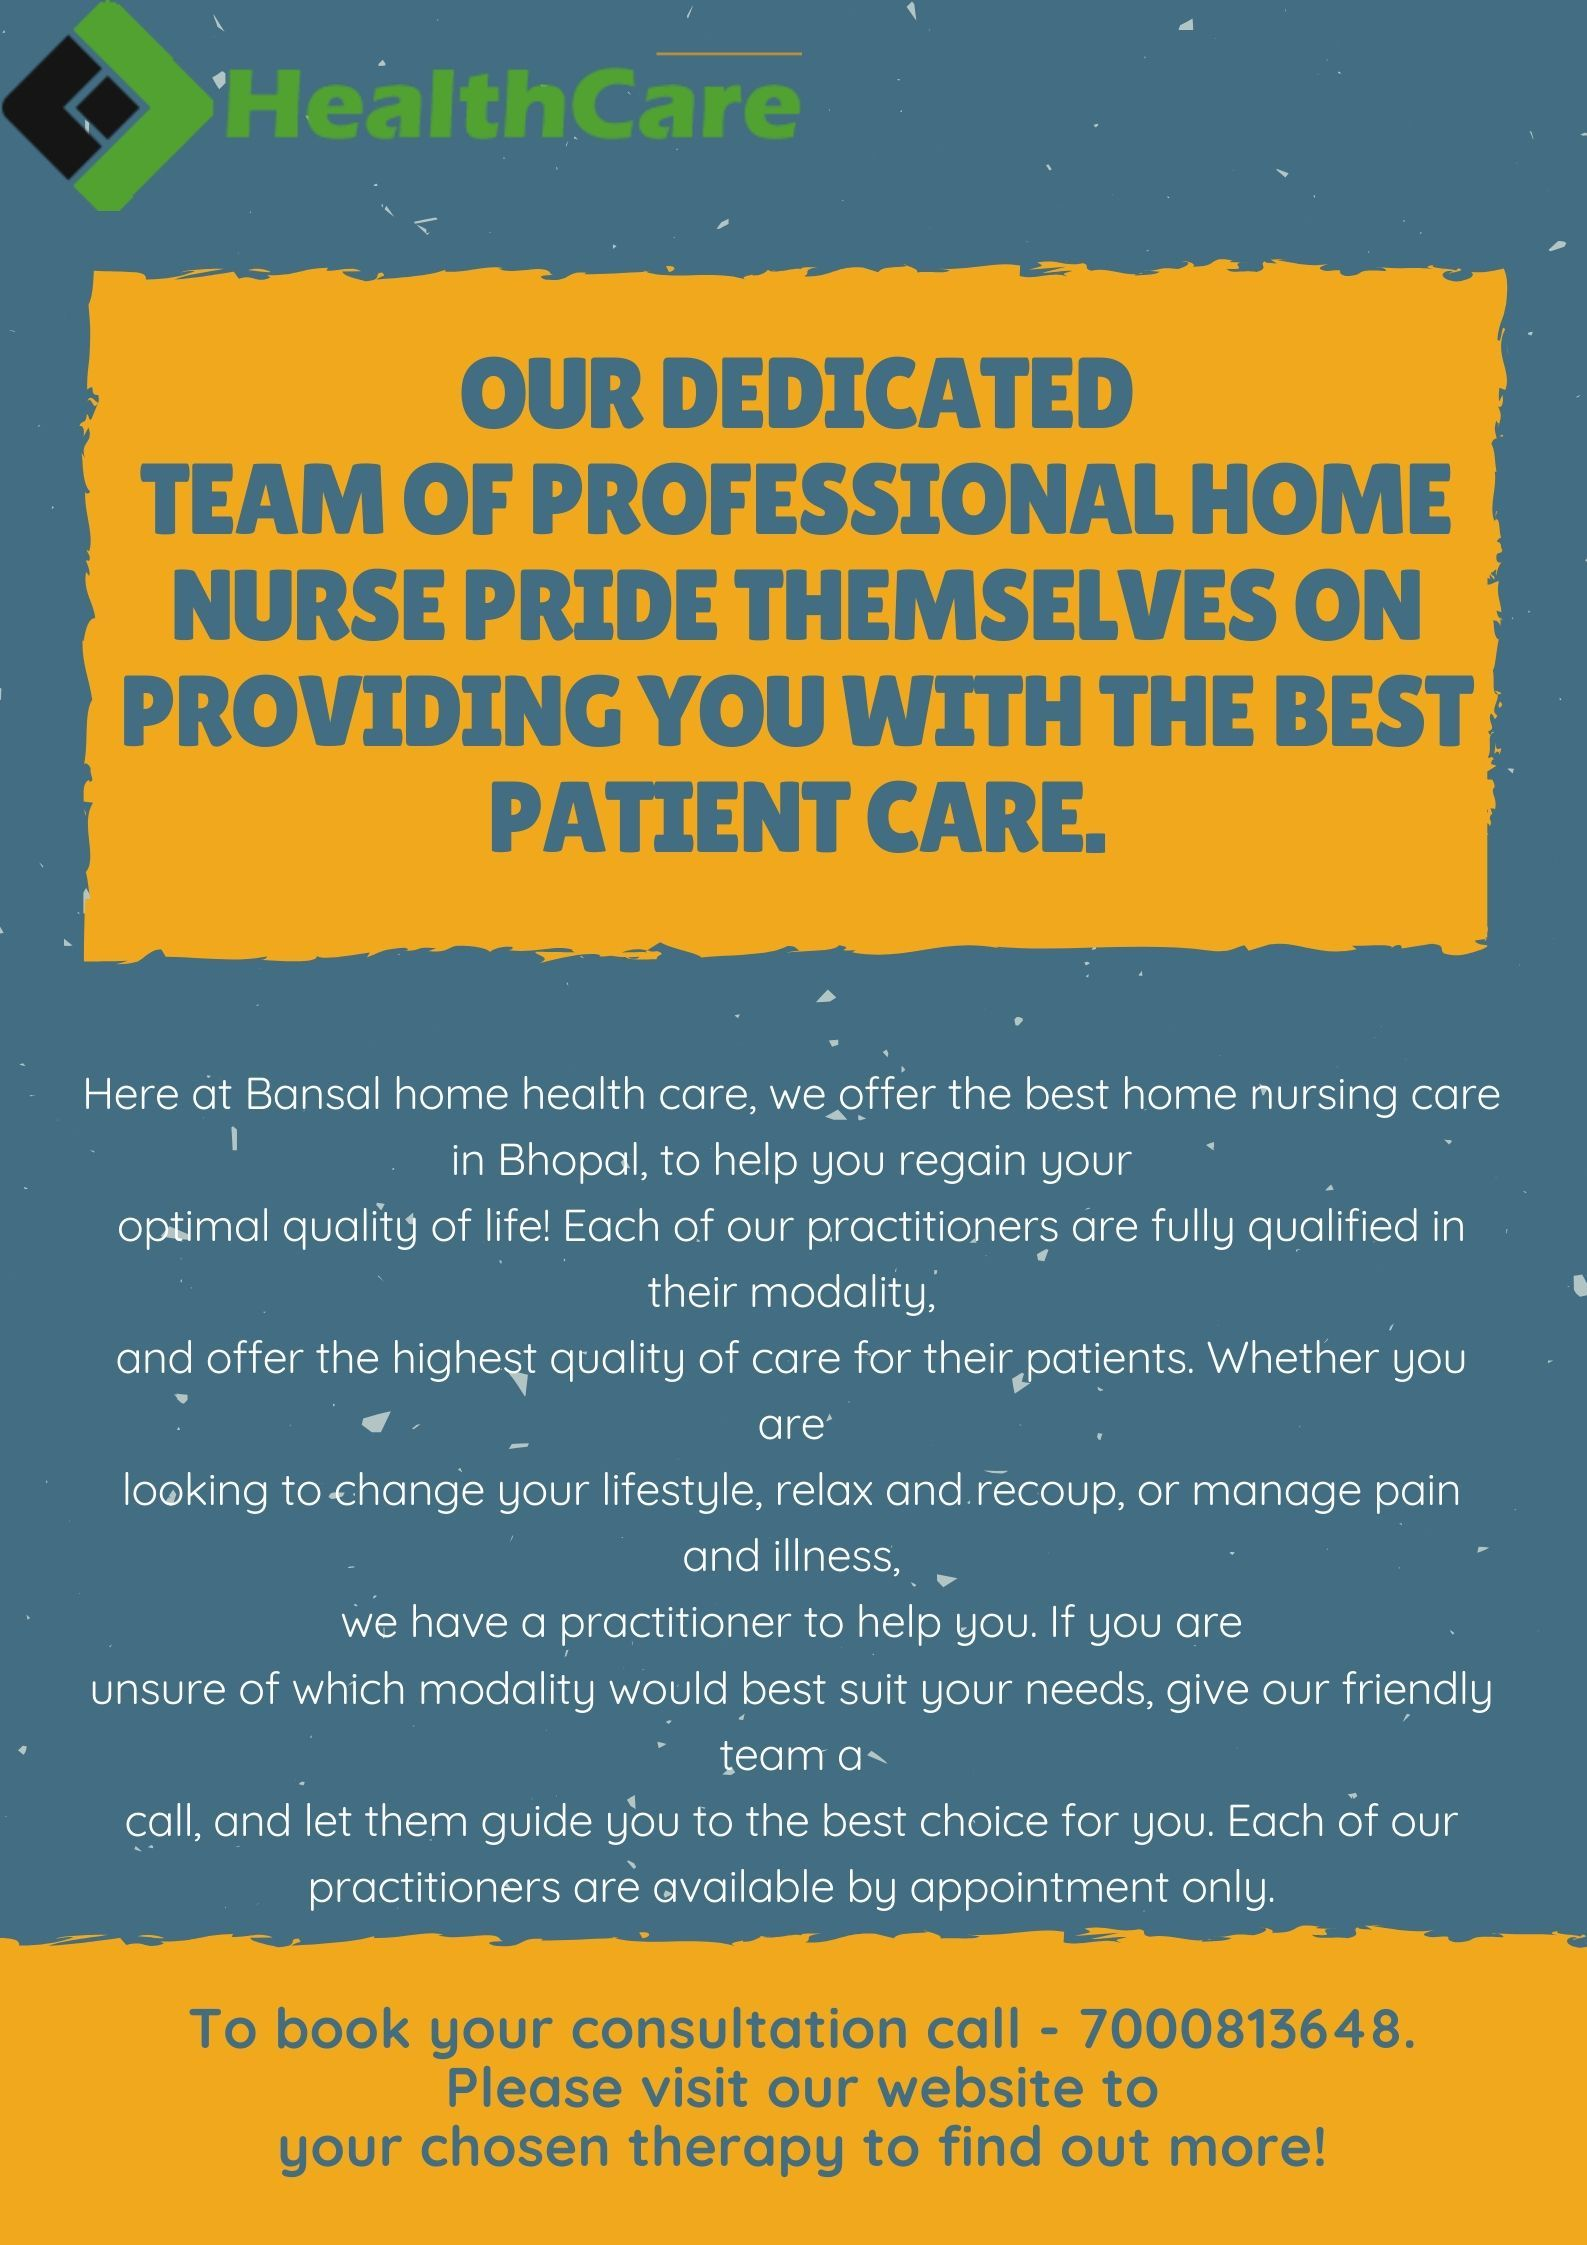 Here At Bansal Home Health Care We Offer The Best Home Nursing